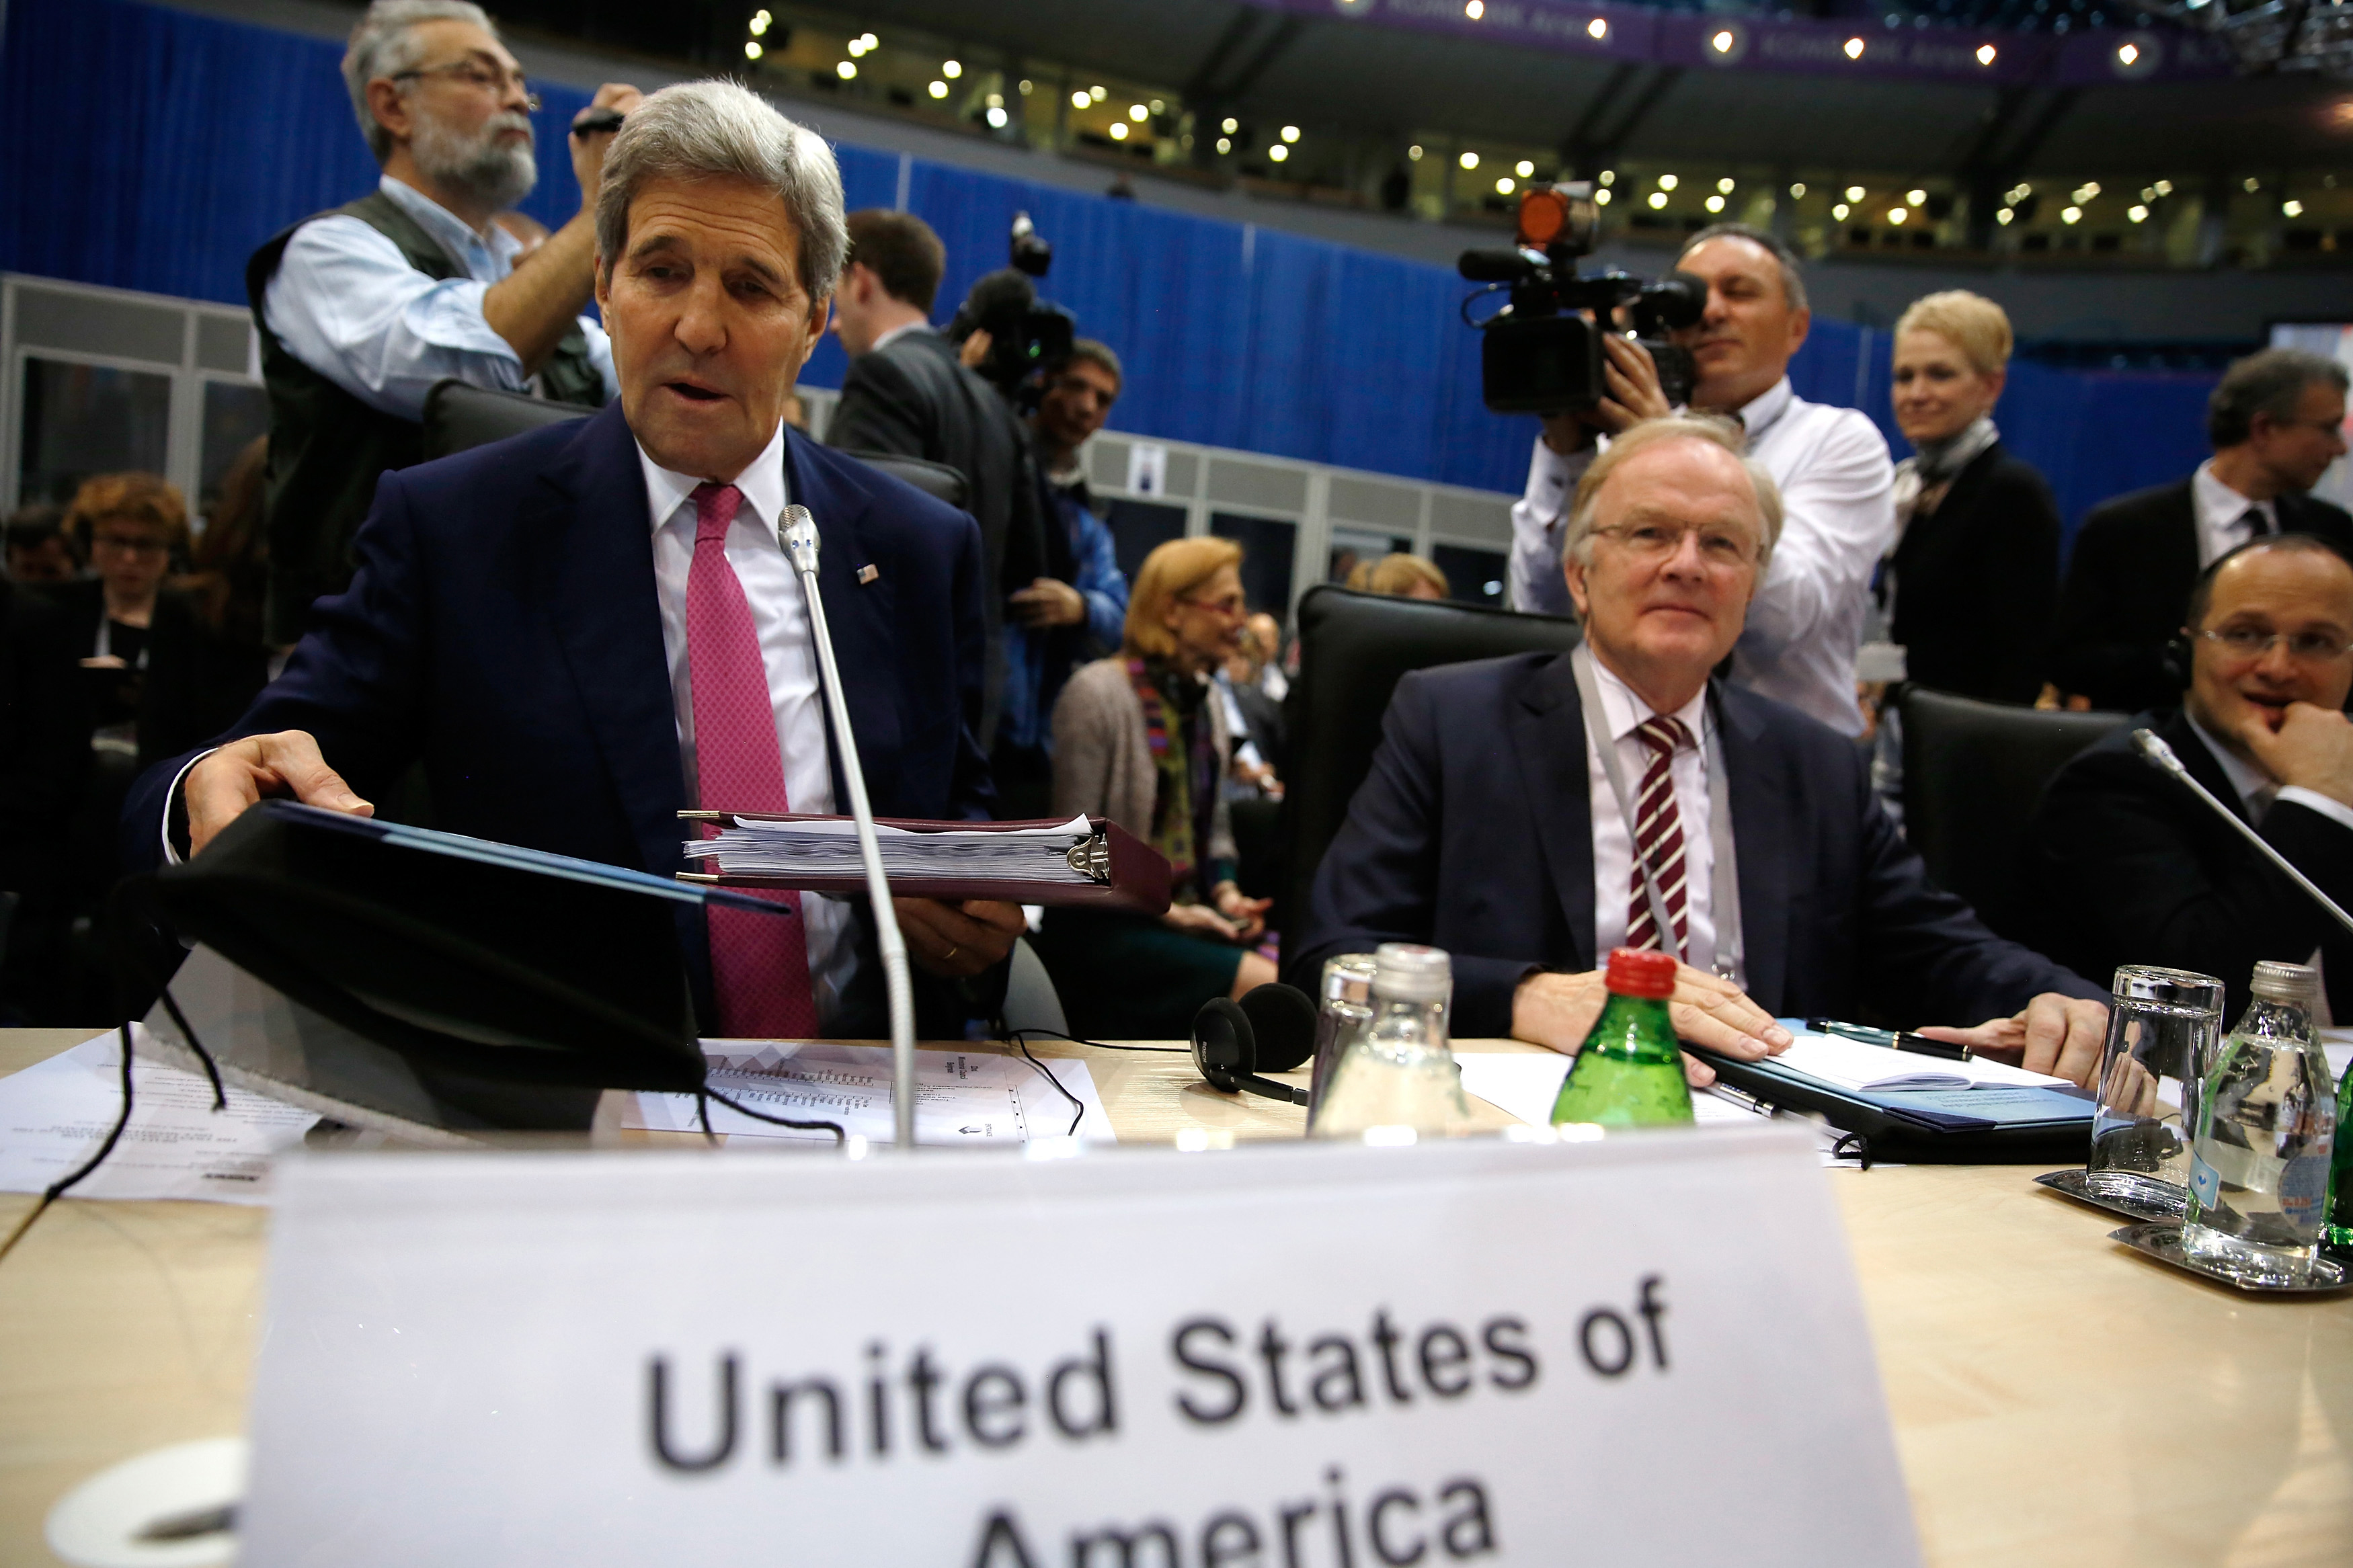 U.S. Secretary of State John Kerry, left, takes his seat to participate in the Organization for Security and Cooperation in Europe (OSCE) ministerial council meeting in Belgrade, Serbia Thursday, Dec. 3, 2015.